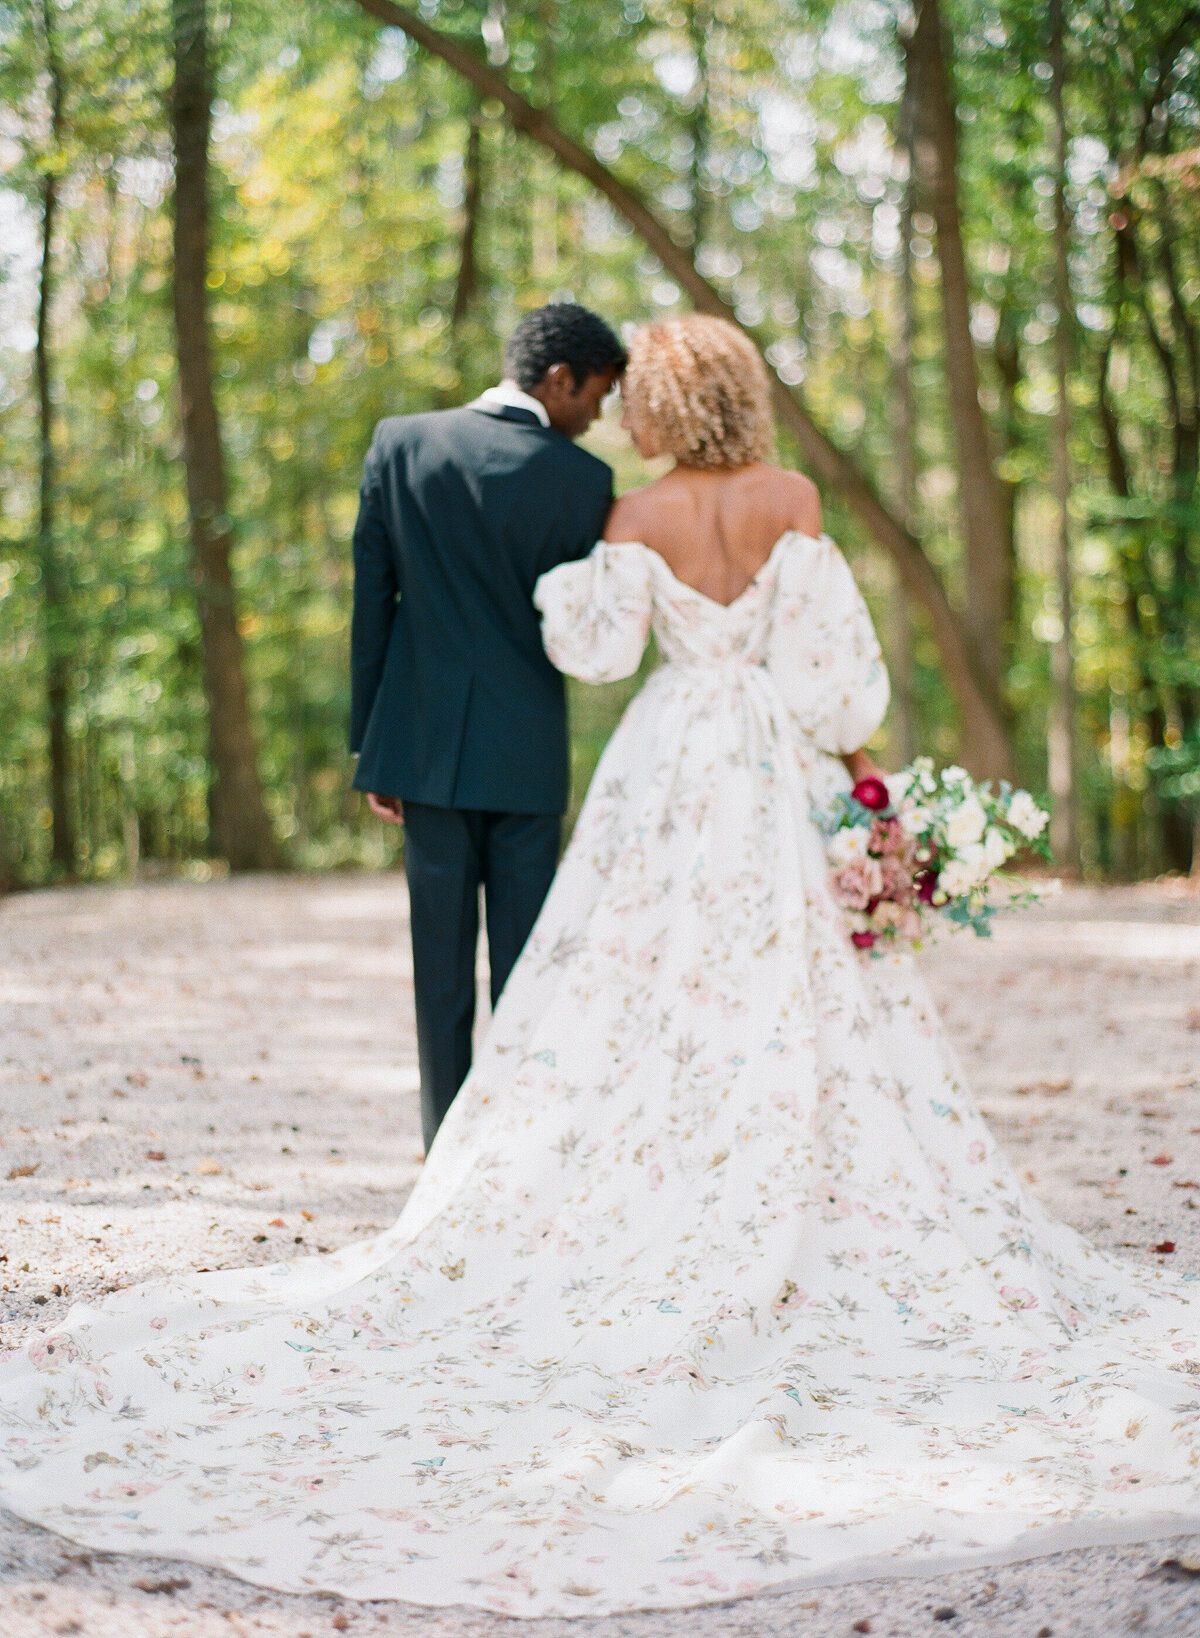 Carolina Grove Monet Inspired Wedding Photography, North-Carolina 13